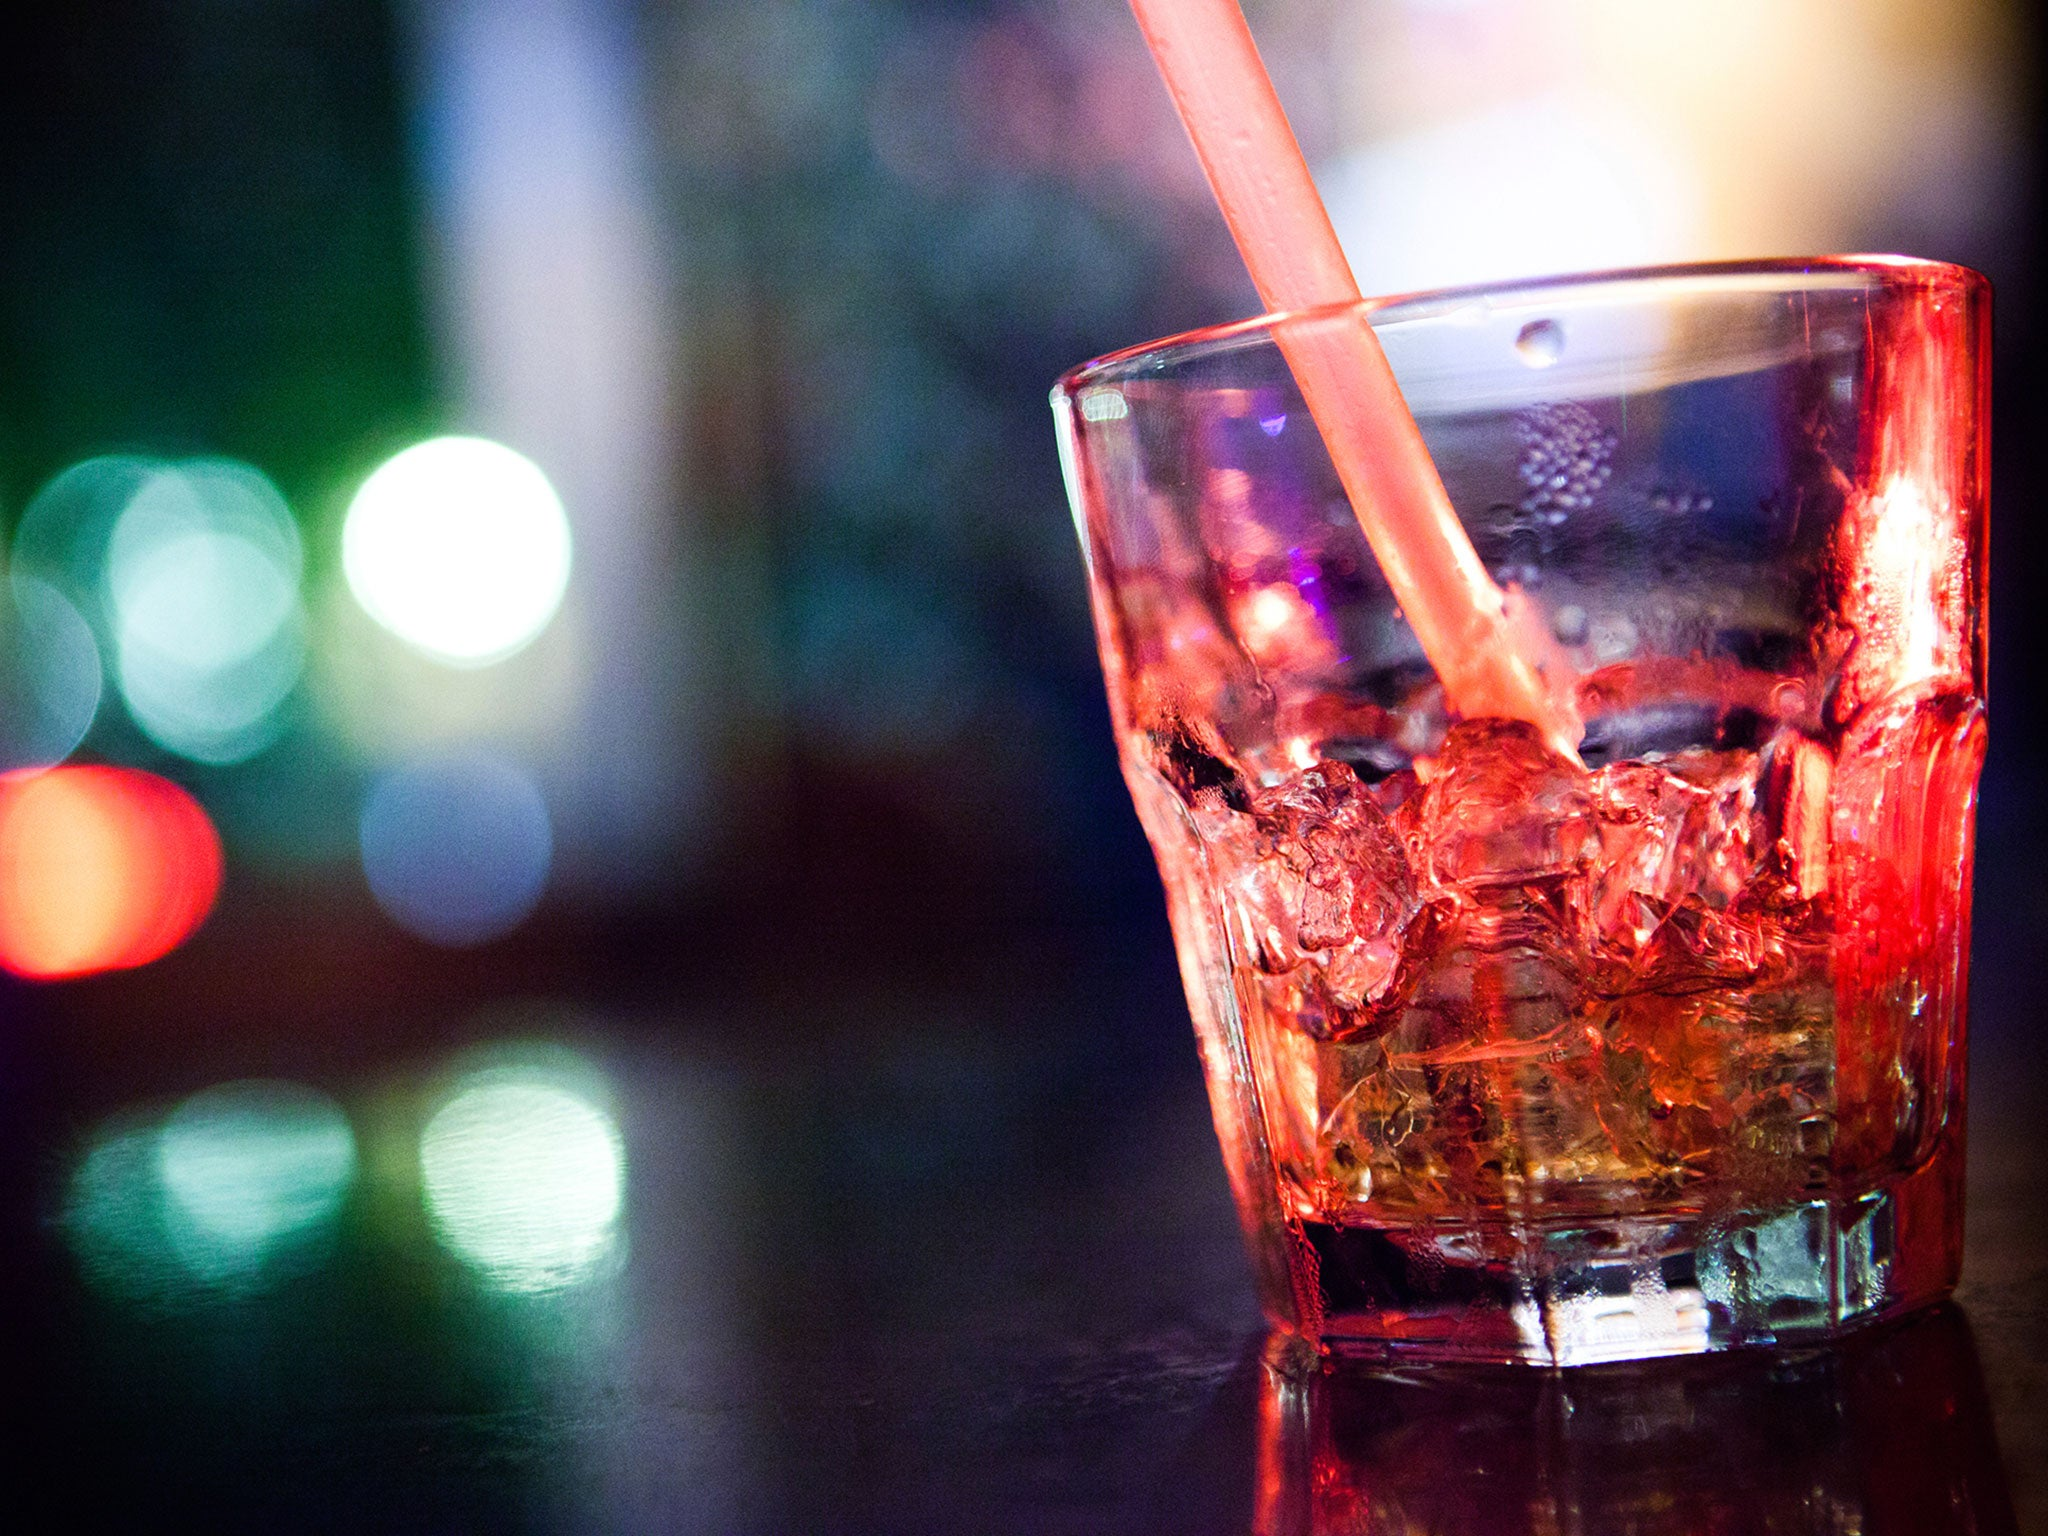 Why alcohol makes you feel warm – and other strange effects it has on the brain